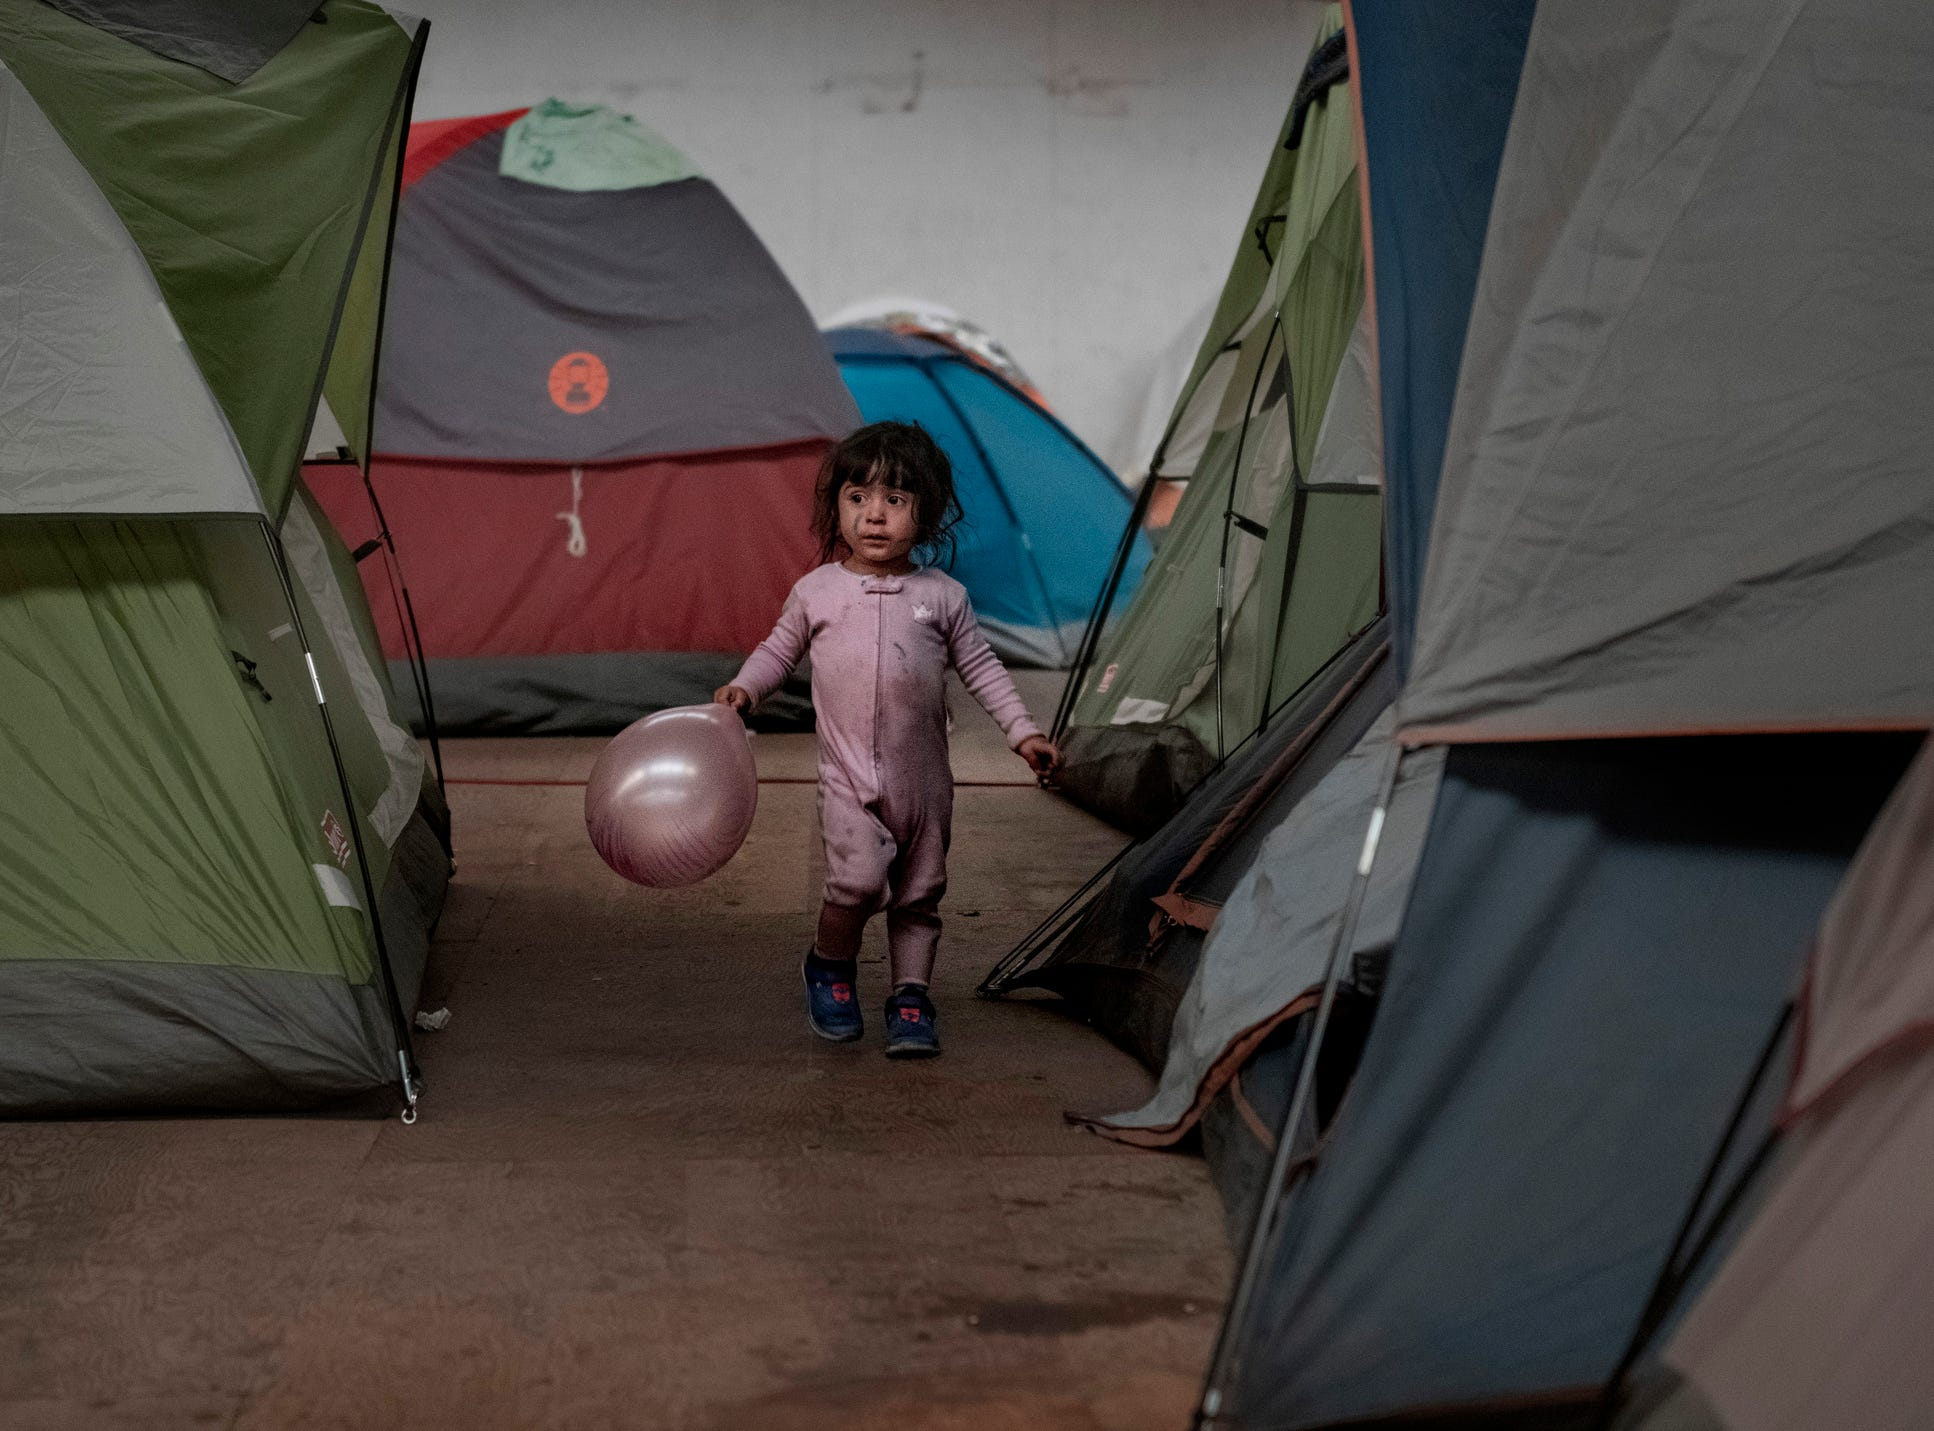 A girl holds a balloon as she walks among tents inside an empty warehouse used as a shelter set up for migrants in downtown Tijuana, Mexico, Wednesday, Jan. 2, 2019.